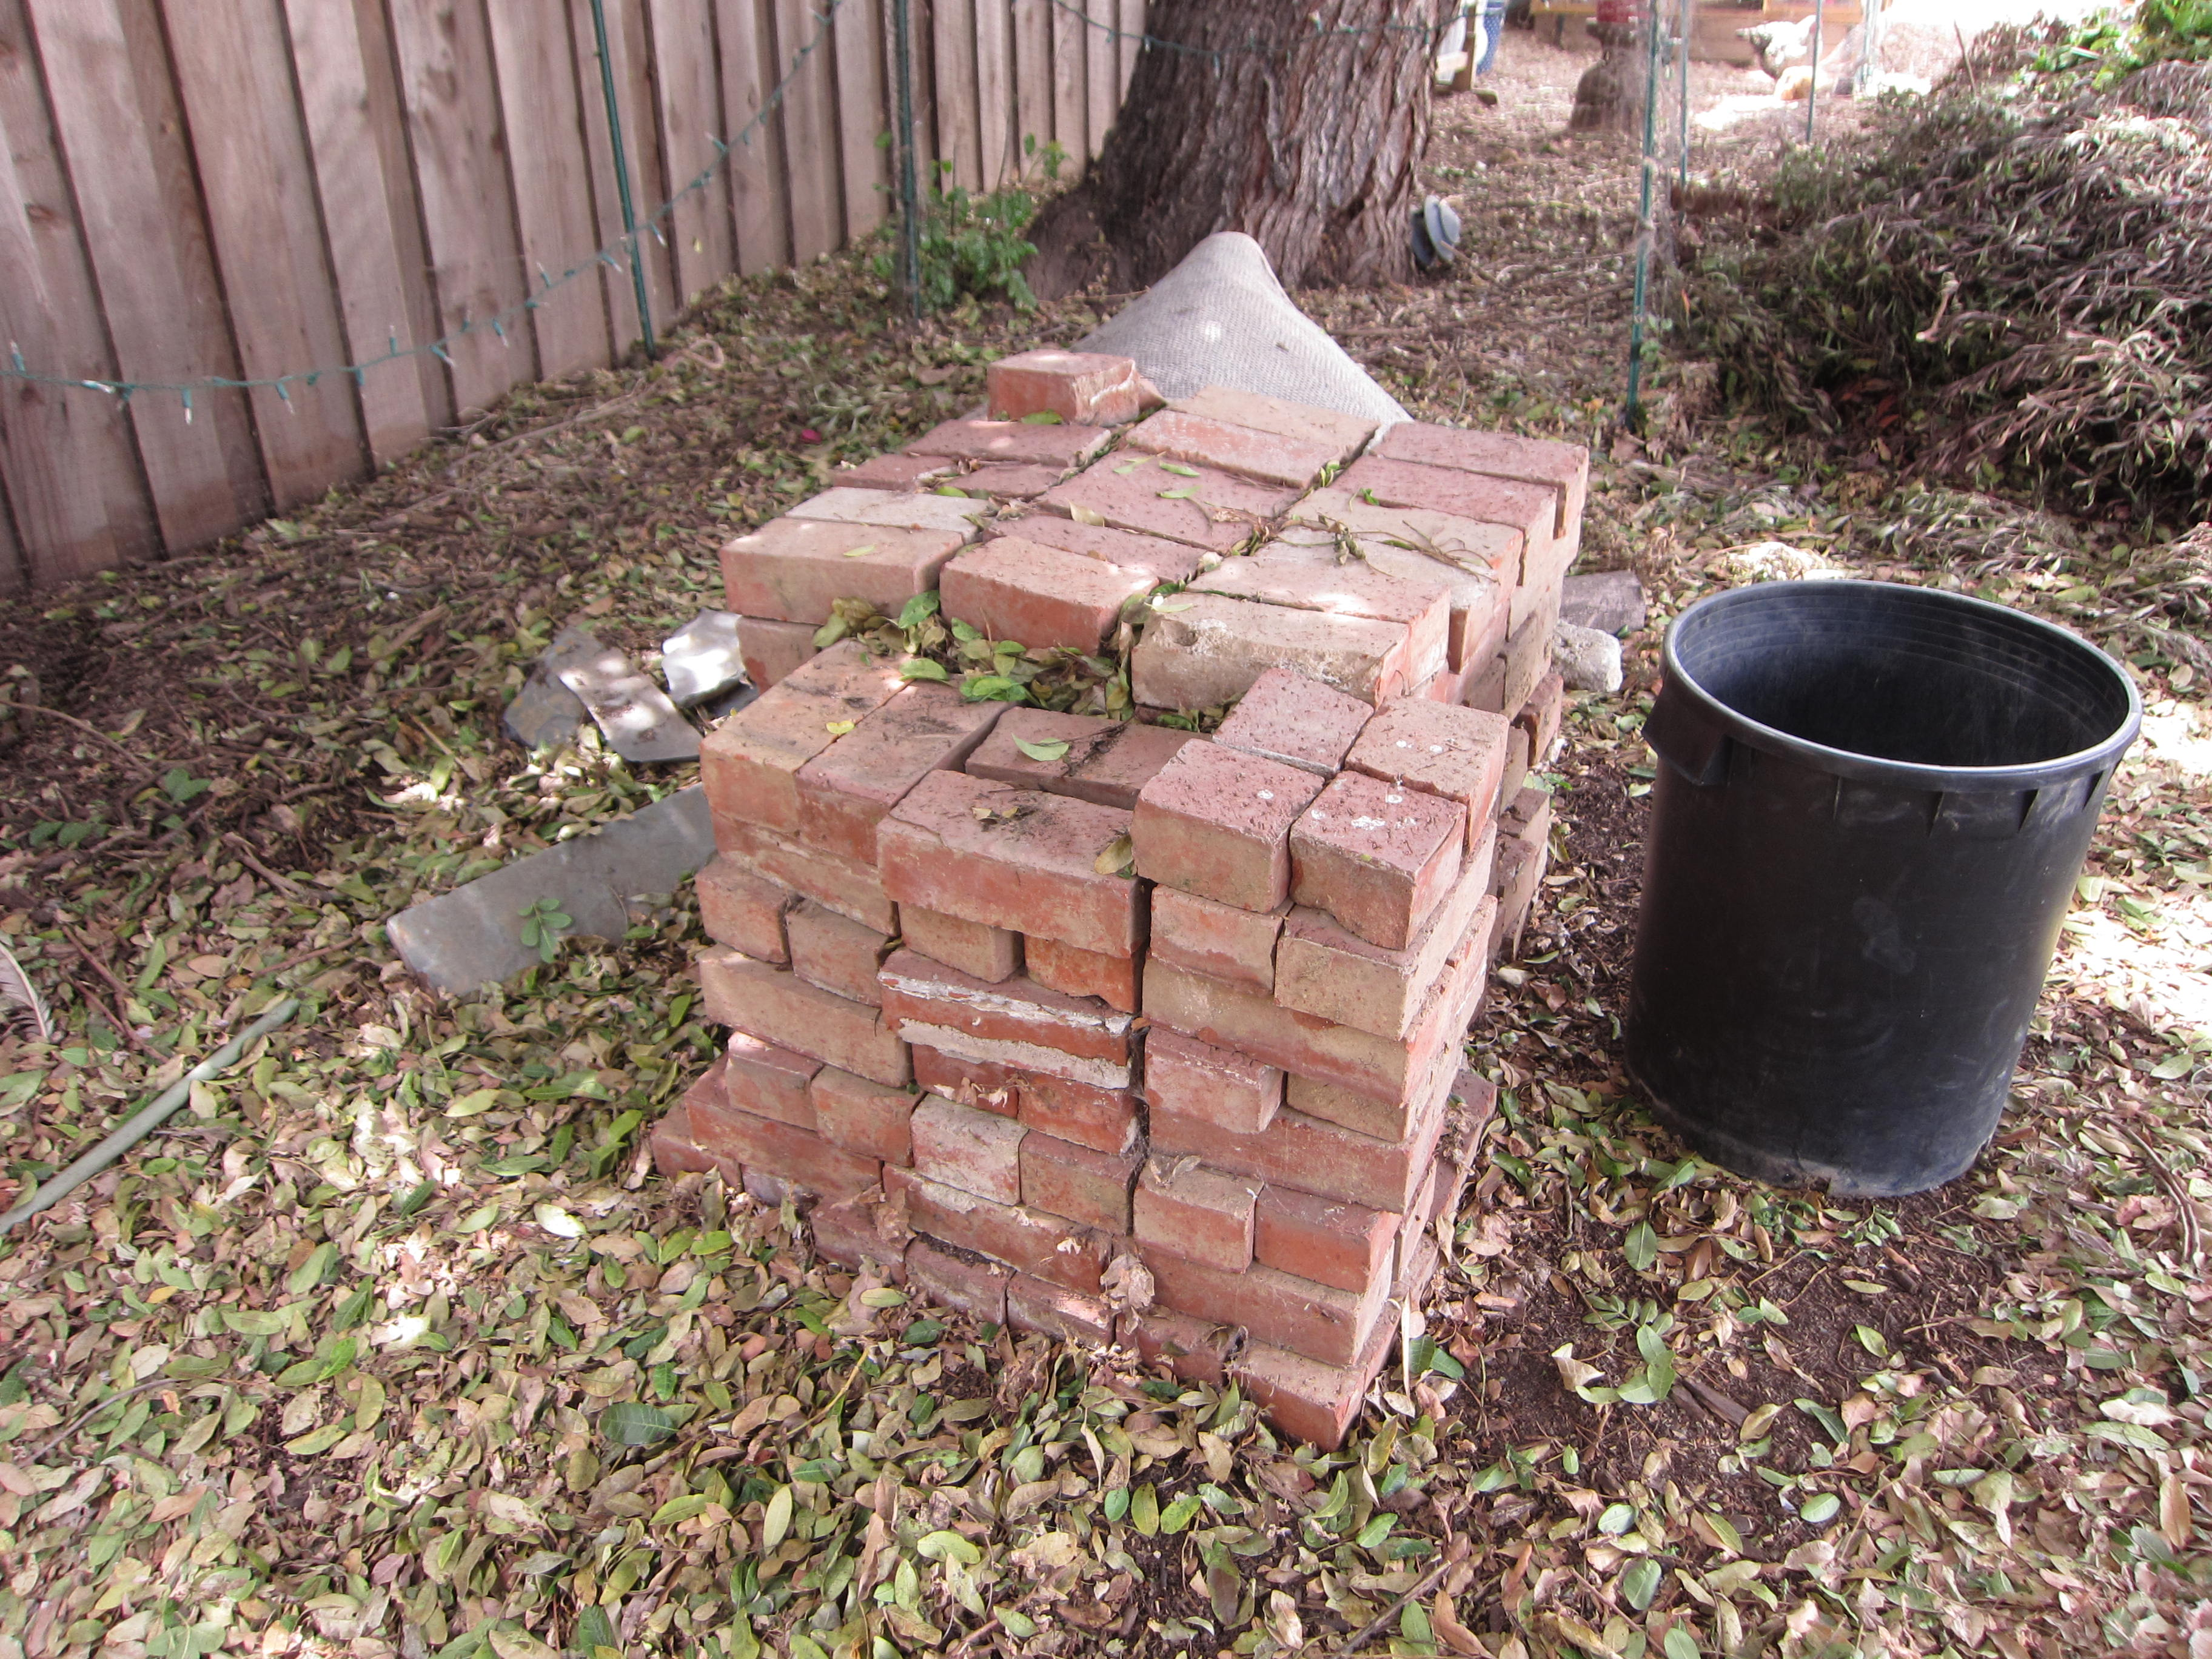 Left over bricks from a project finally being put to good use. You'll use 33 bricks.